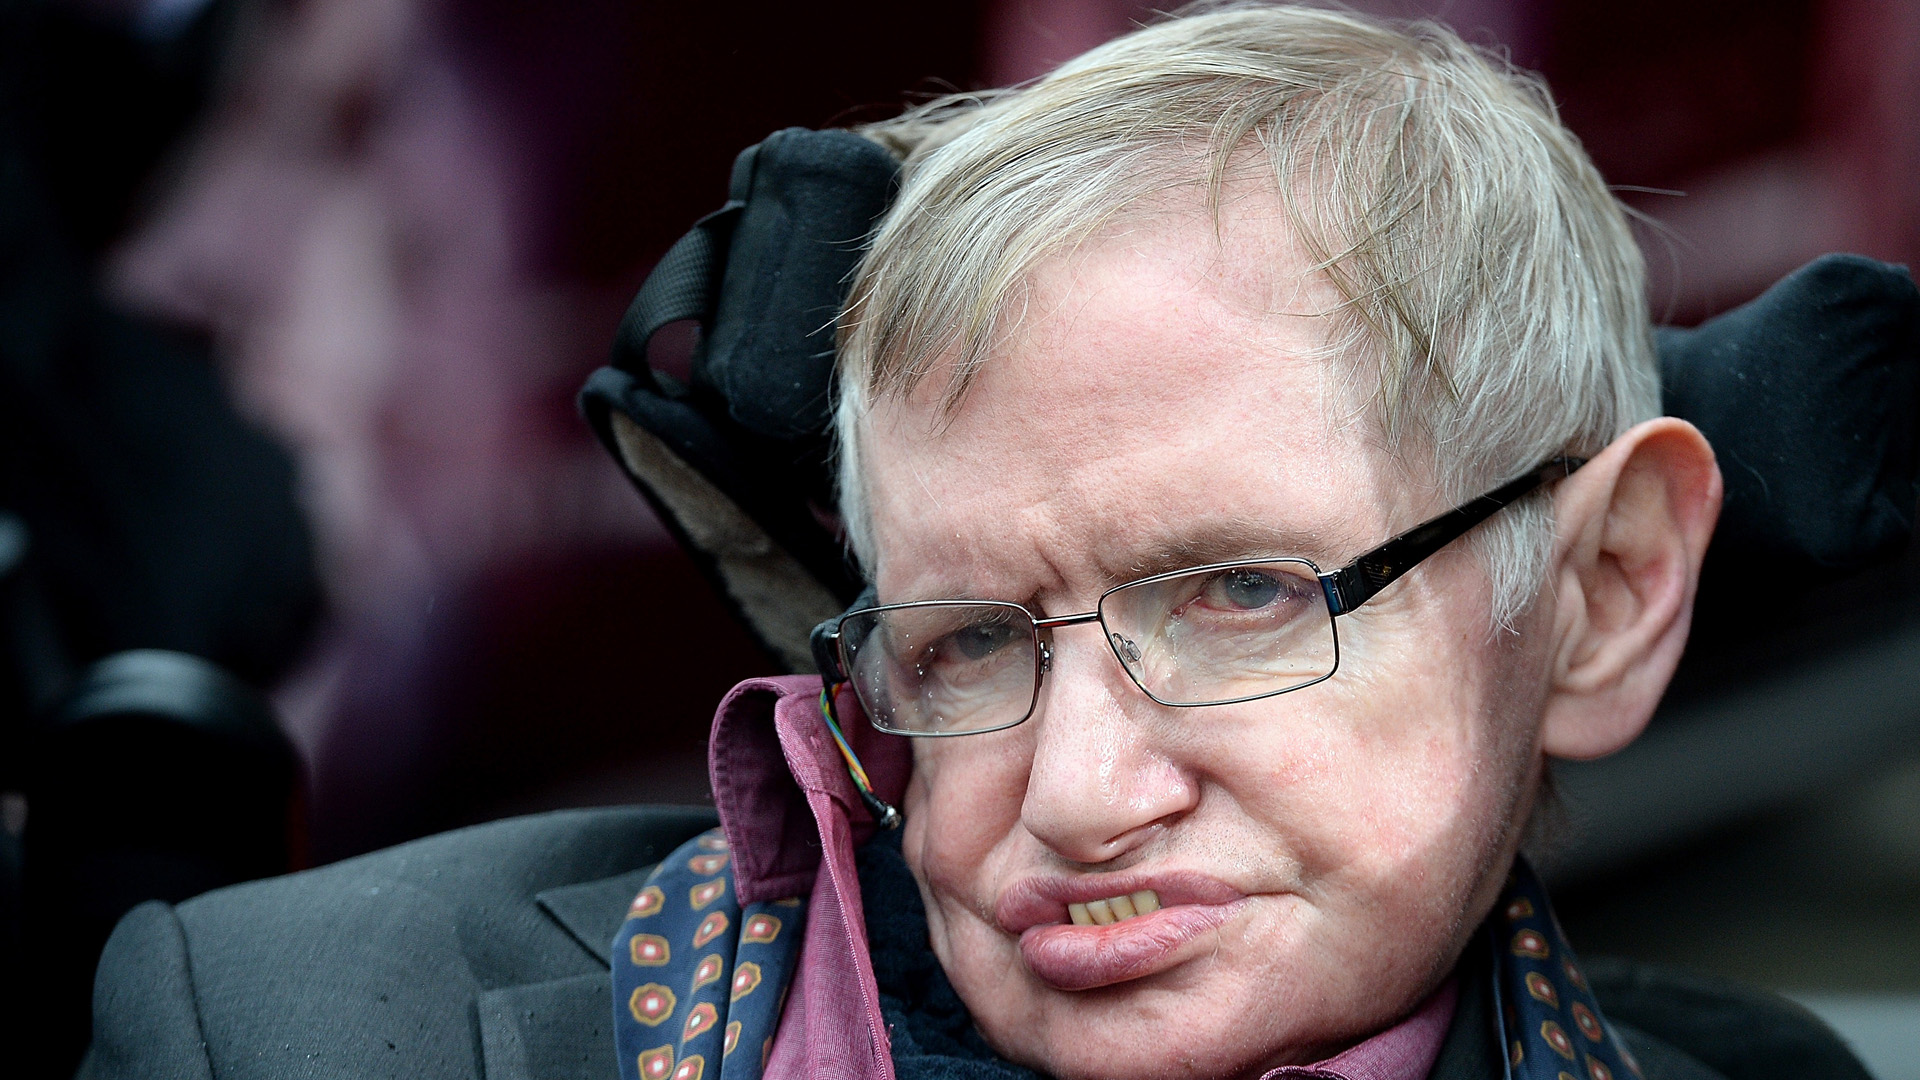 stephenhawking_2015_davejhogan_getty.jpg